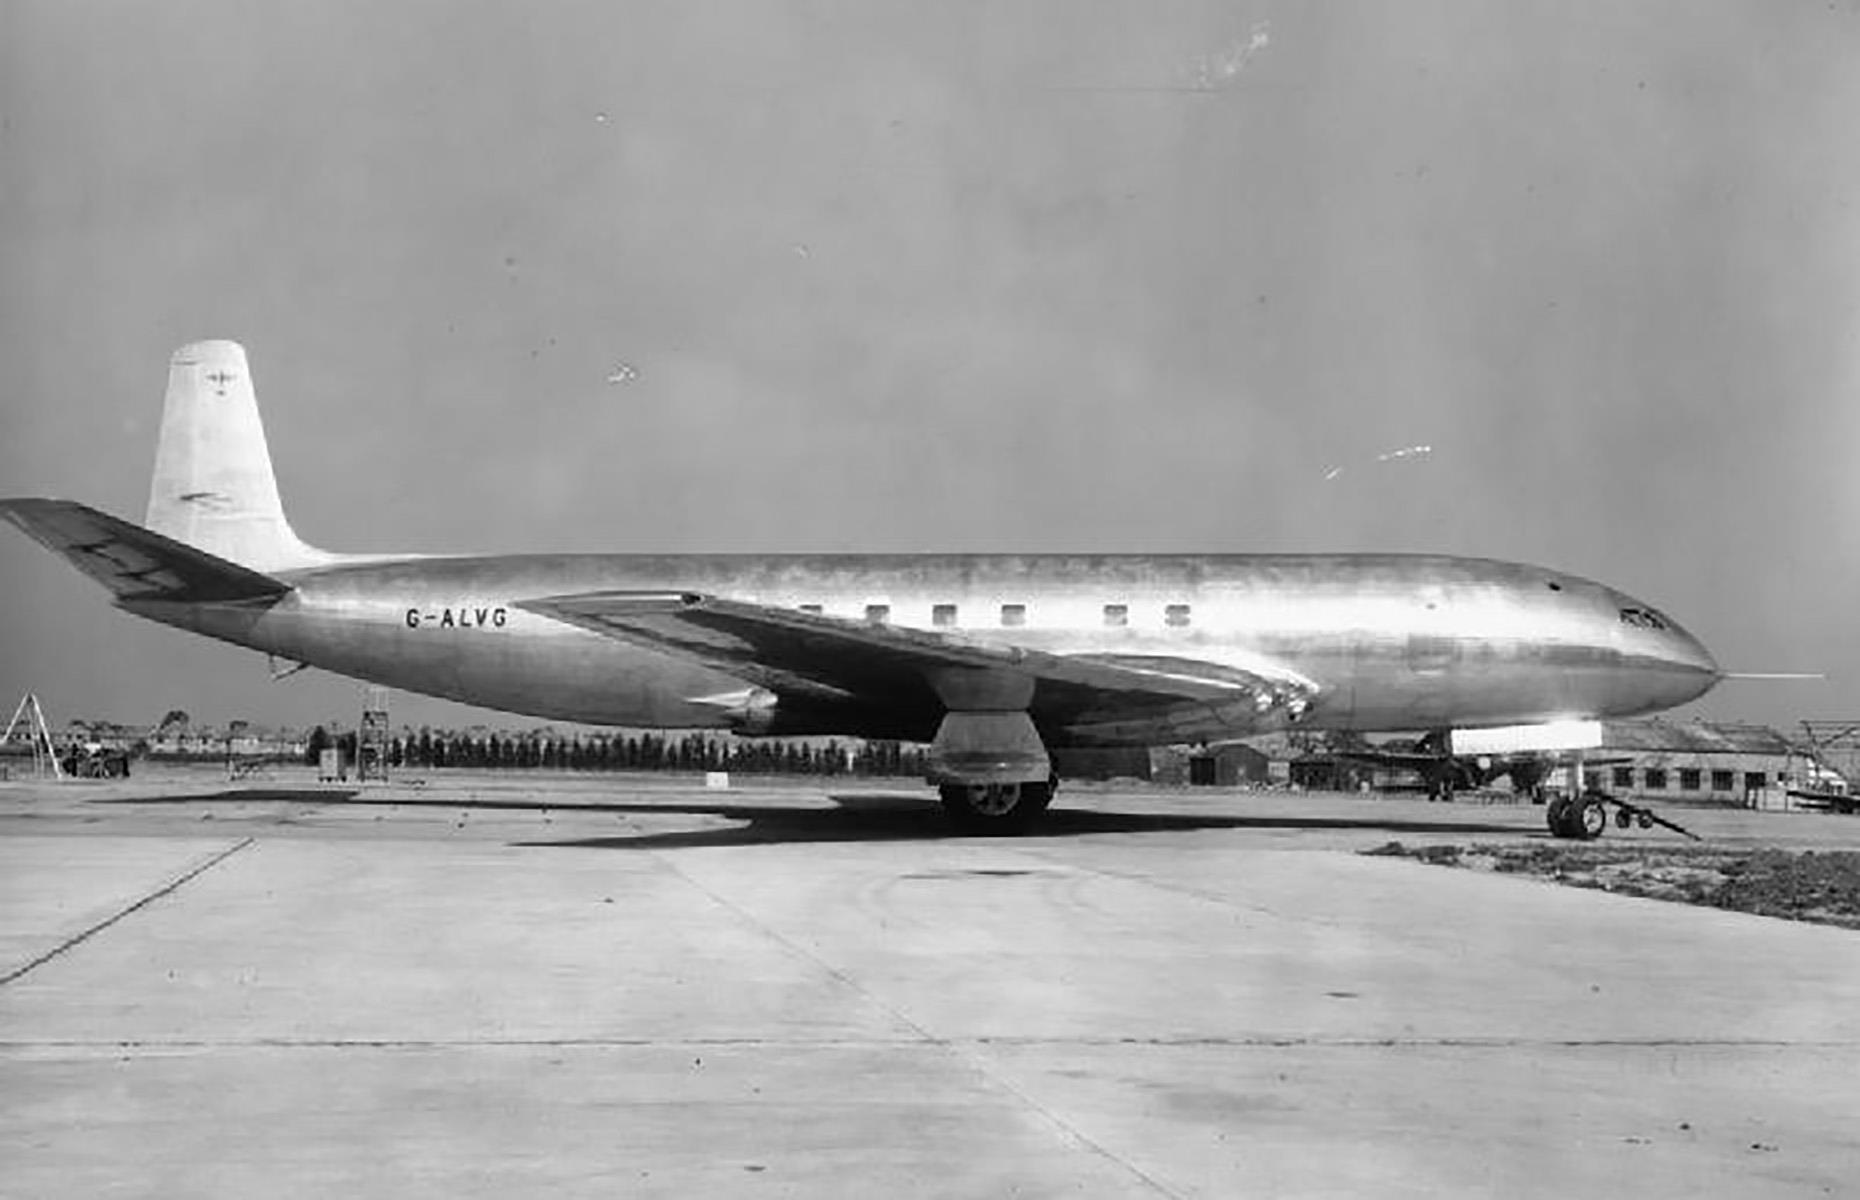 Slide 14 of 35: Hailing from Britain, the de Havilland Comet was the world's first commercial jet airliner. Built in the late 1940s and first introduced to the commercial market in 1952, it was a cut above the rest, and not just because of its turbojet engines.